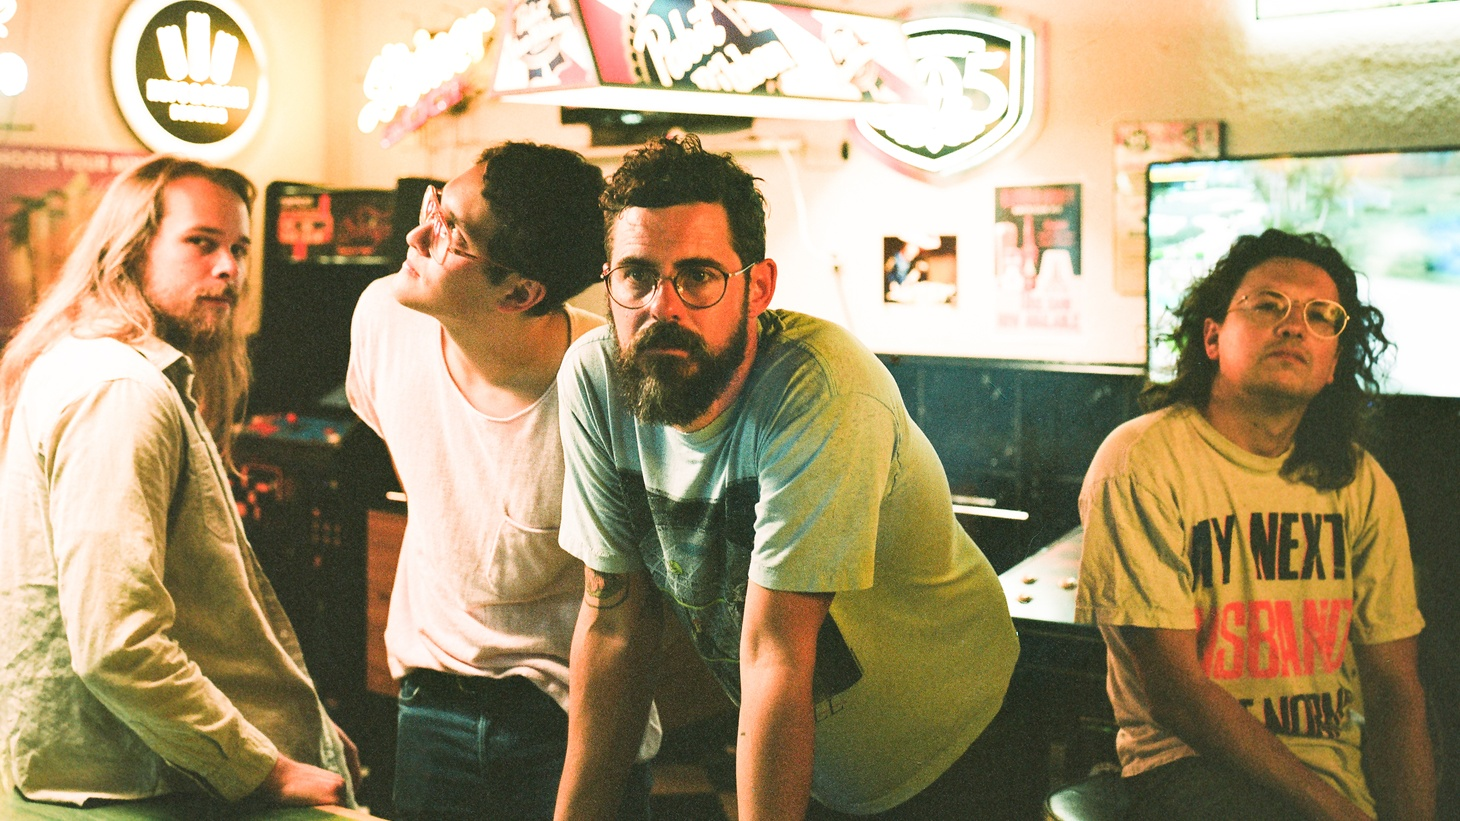 After SXSW was cancelled this year, Austin band White Denim got busy reimagining their new reality. Their 30-day album project  World As A Waiting Room  was recorded remotely at their homes.